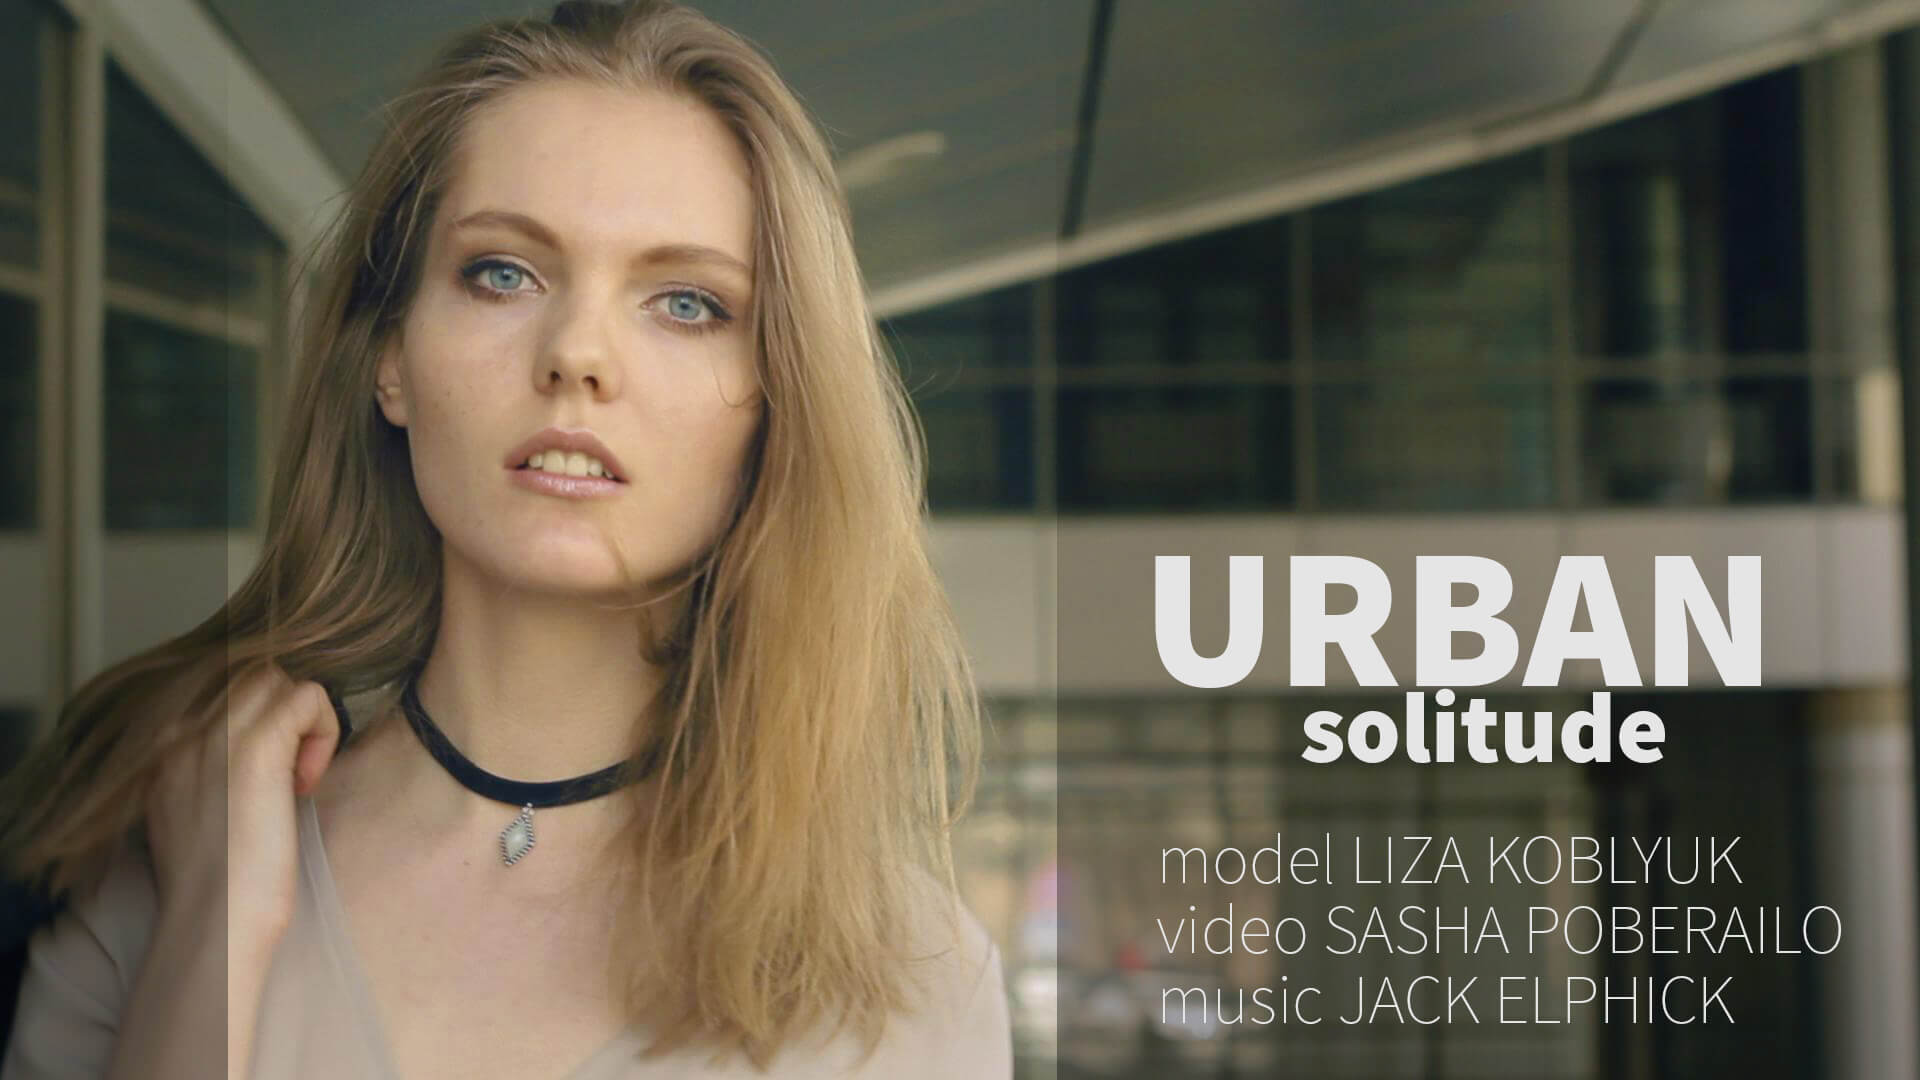 urban solitude dailymotion - blond, fashion, girl, model, video